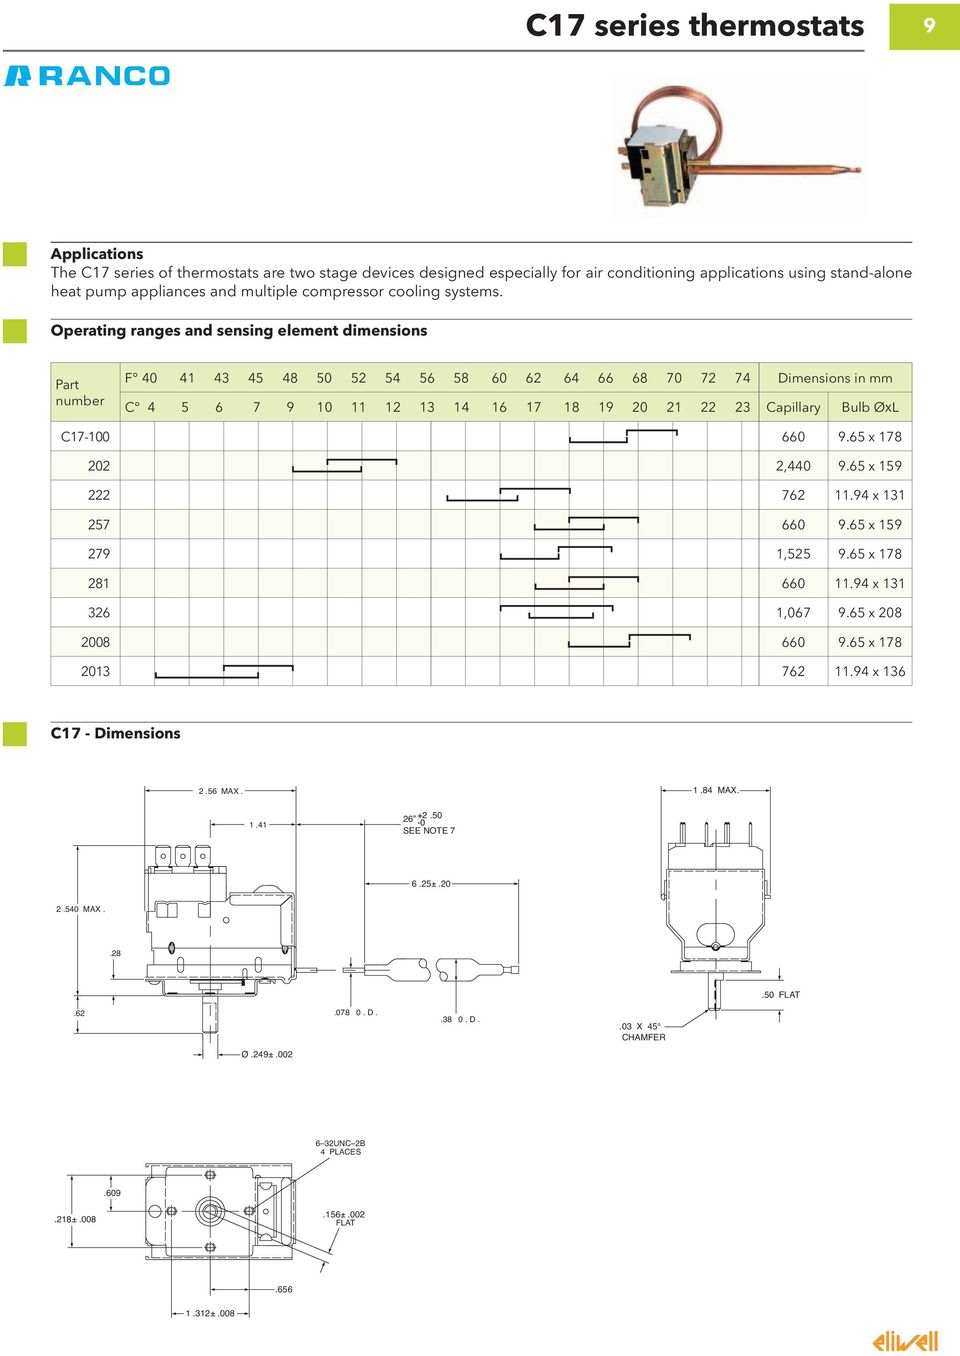 Product Catalogue 2012 13 Electromechanical Controllers Pdf K59 Thermostat Wiring Diagram Operating Ranges And Sensing Element Dimensions Part Number F 40 41 43 45 48 50 52